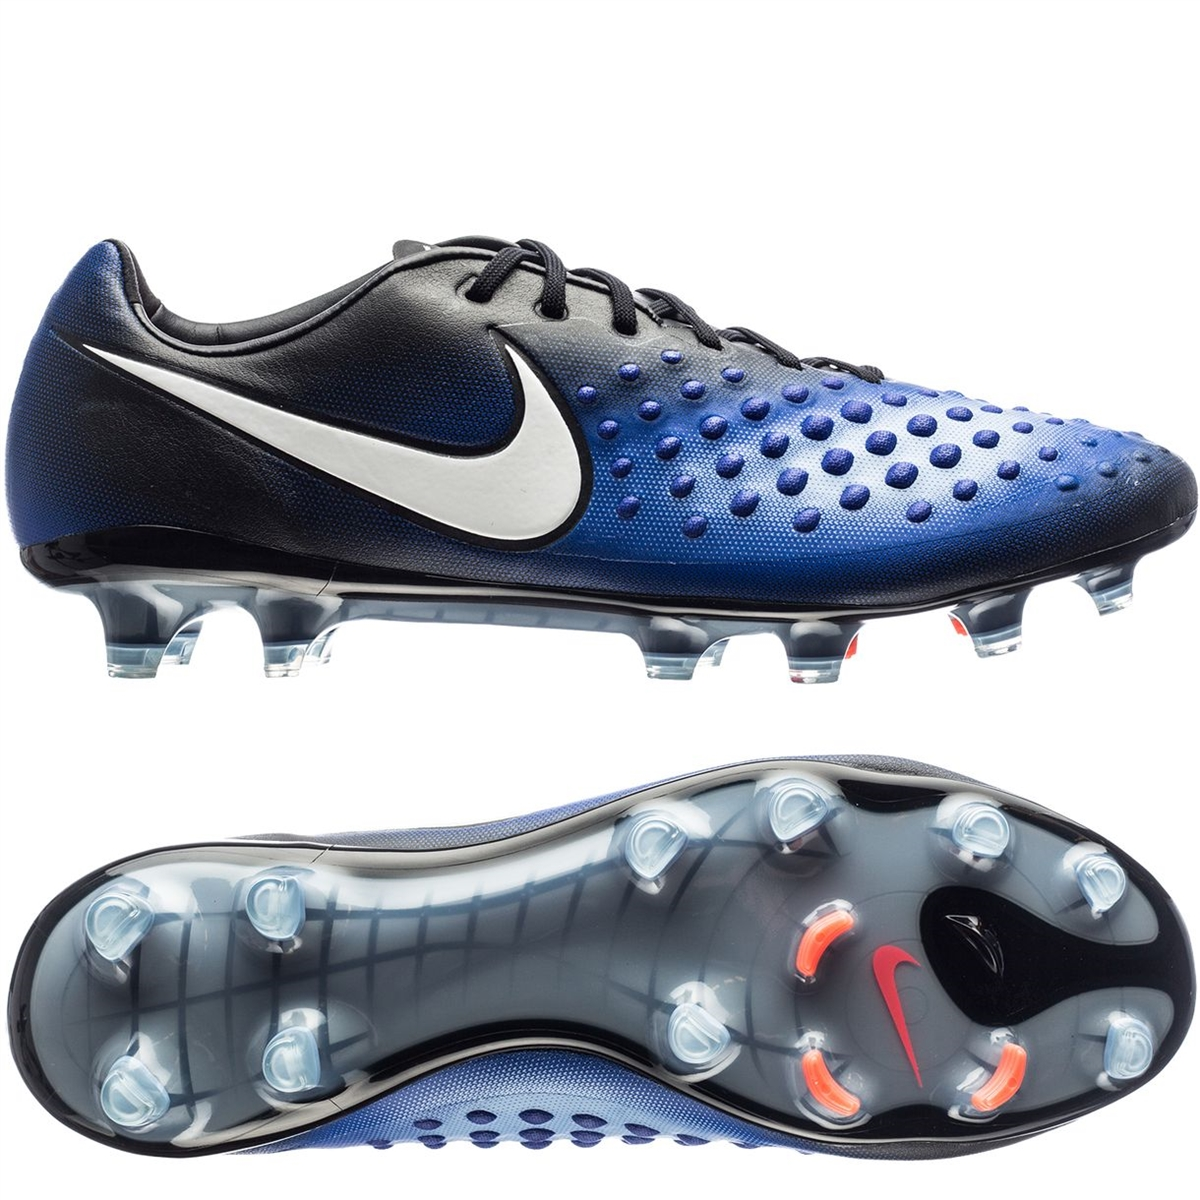 75ff9b99d25 Nike Magista Opus II FG Soccer Cleats (Black White Paramount Blue ...